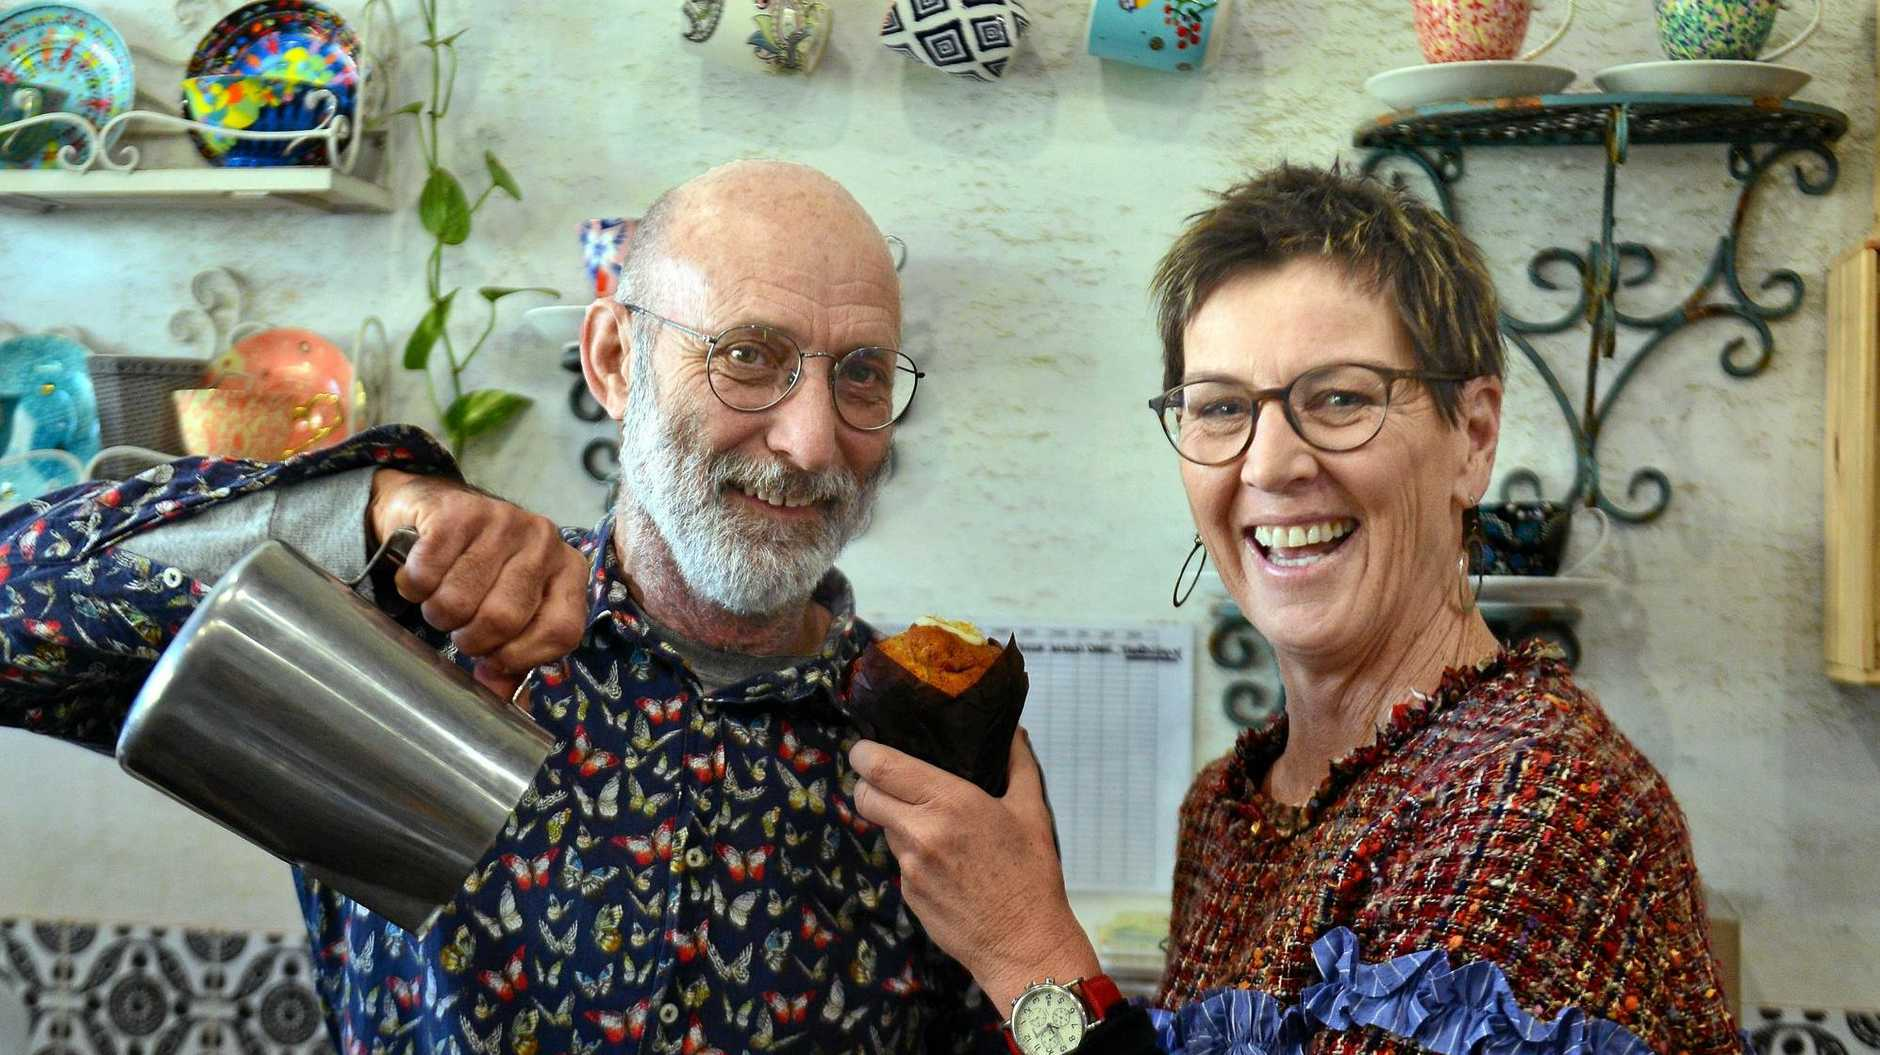 HEART OF COOLUM: David Pocock and Gaye Williams celebrate being in business for 14 years in Coolum.